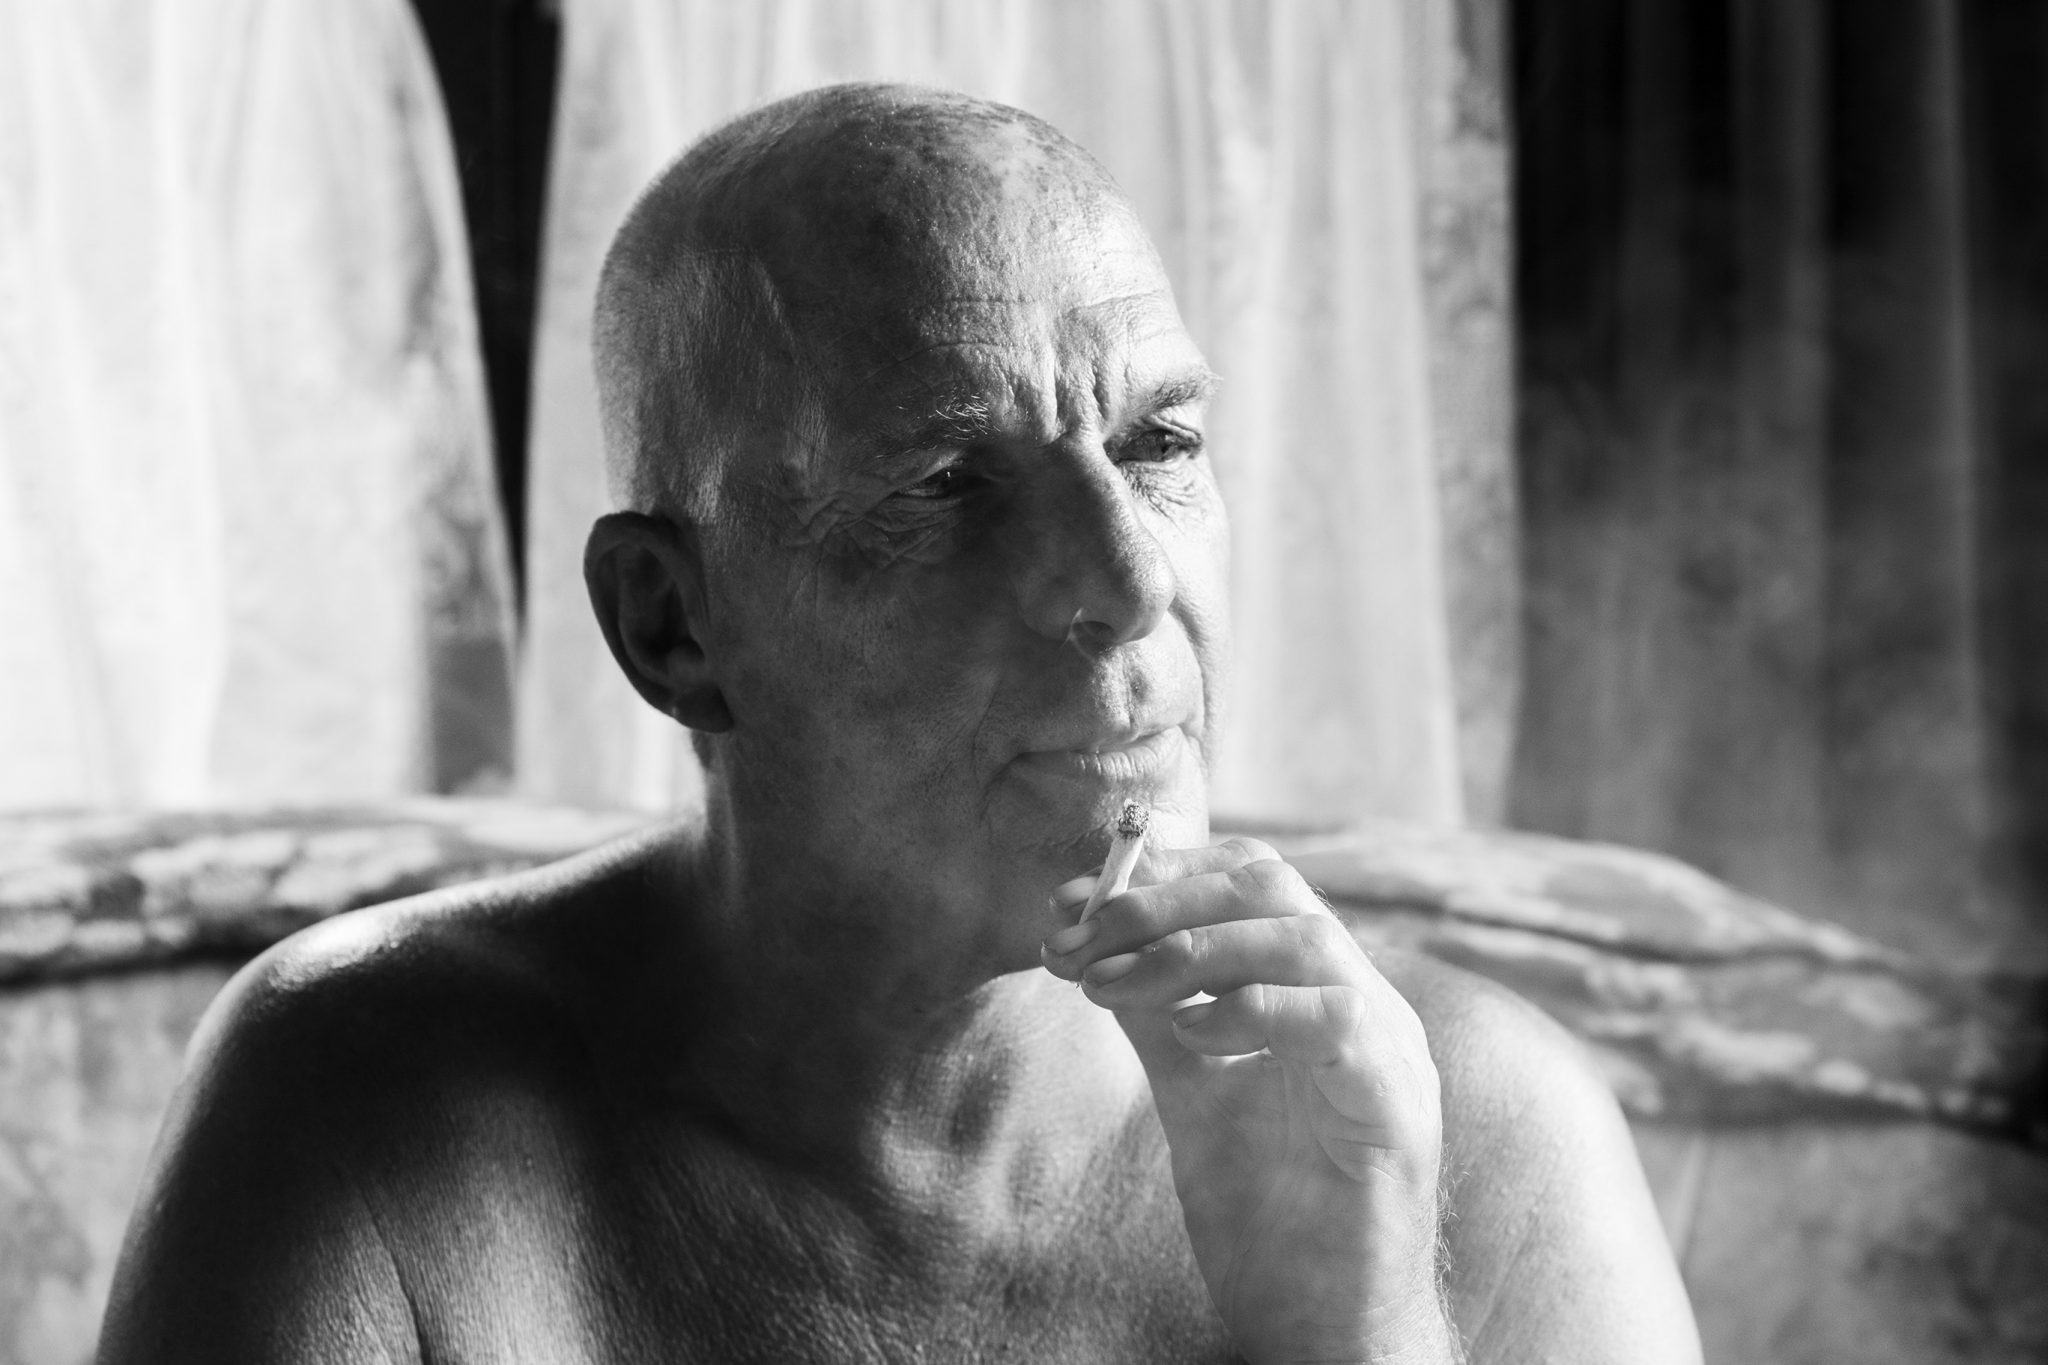 John Smoking - Documentary Photography